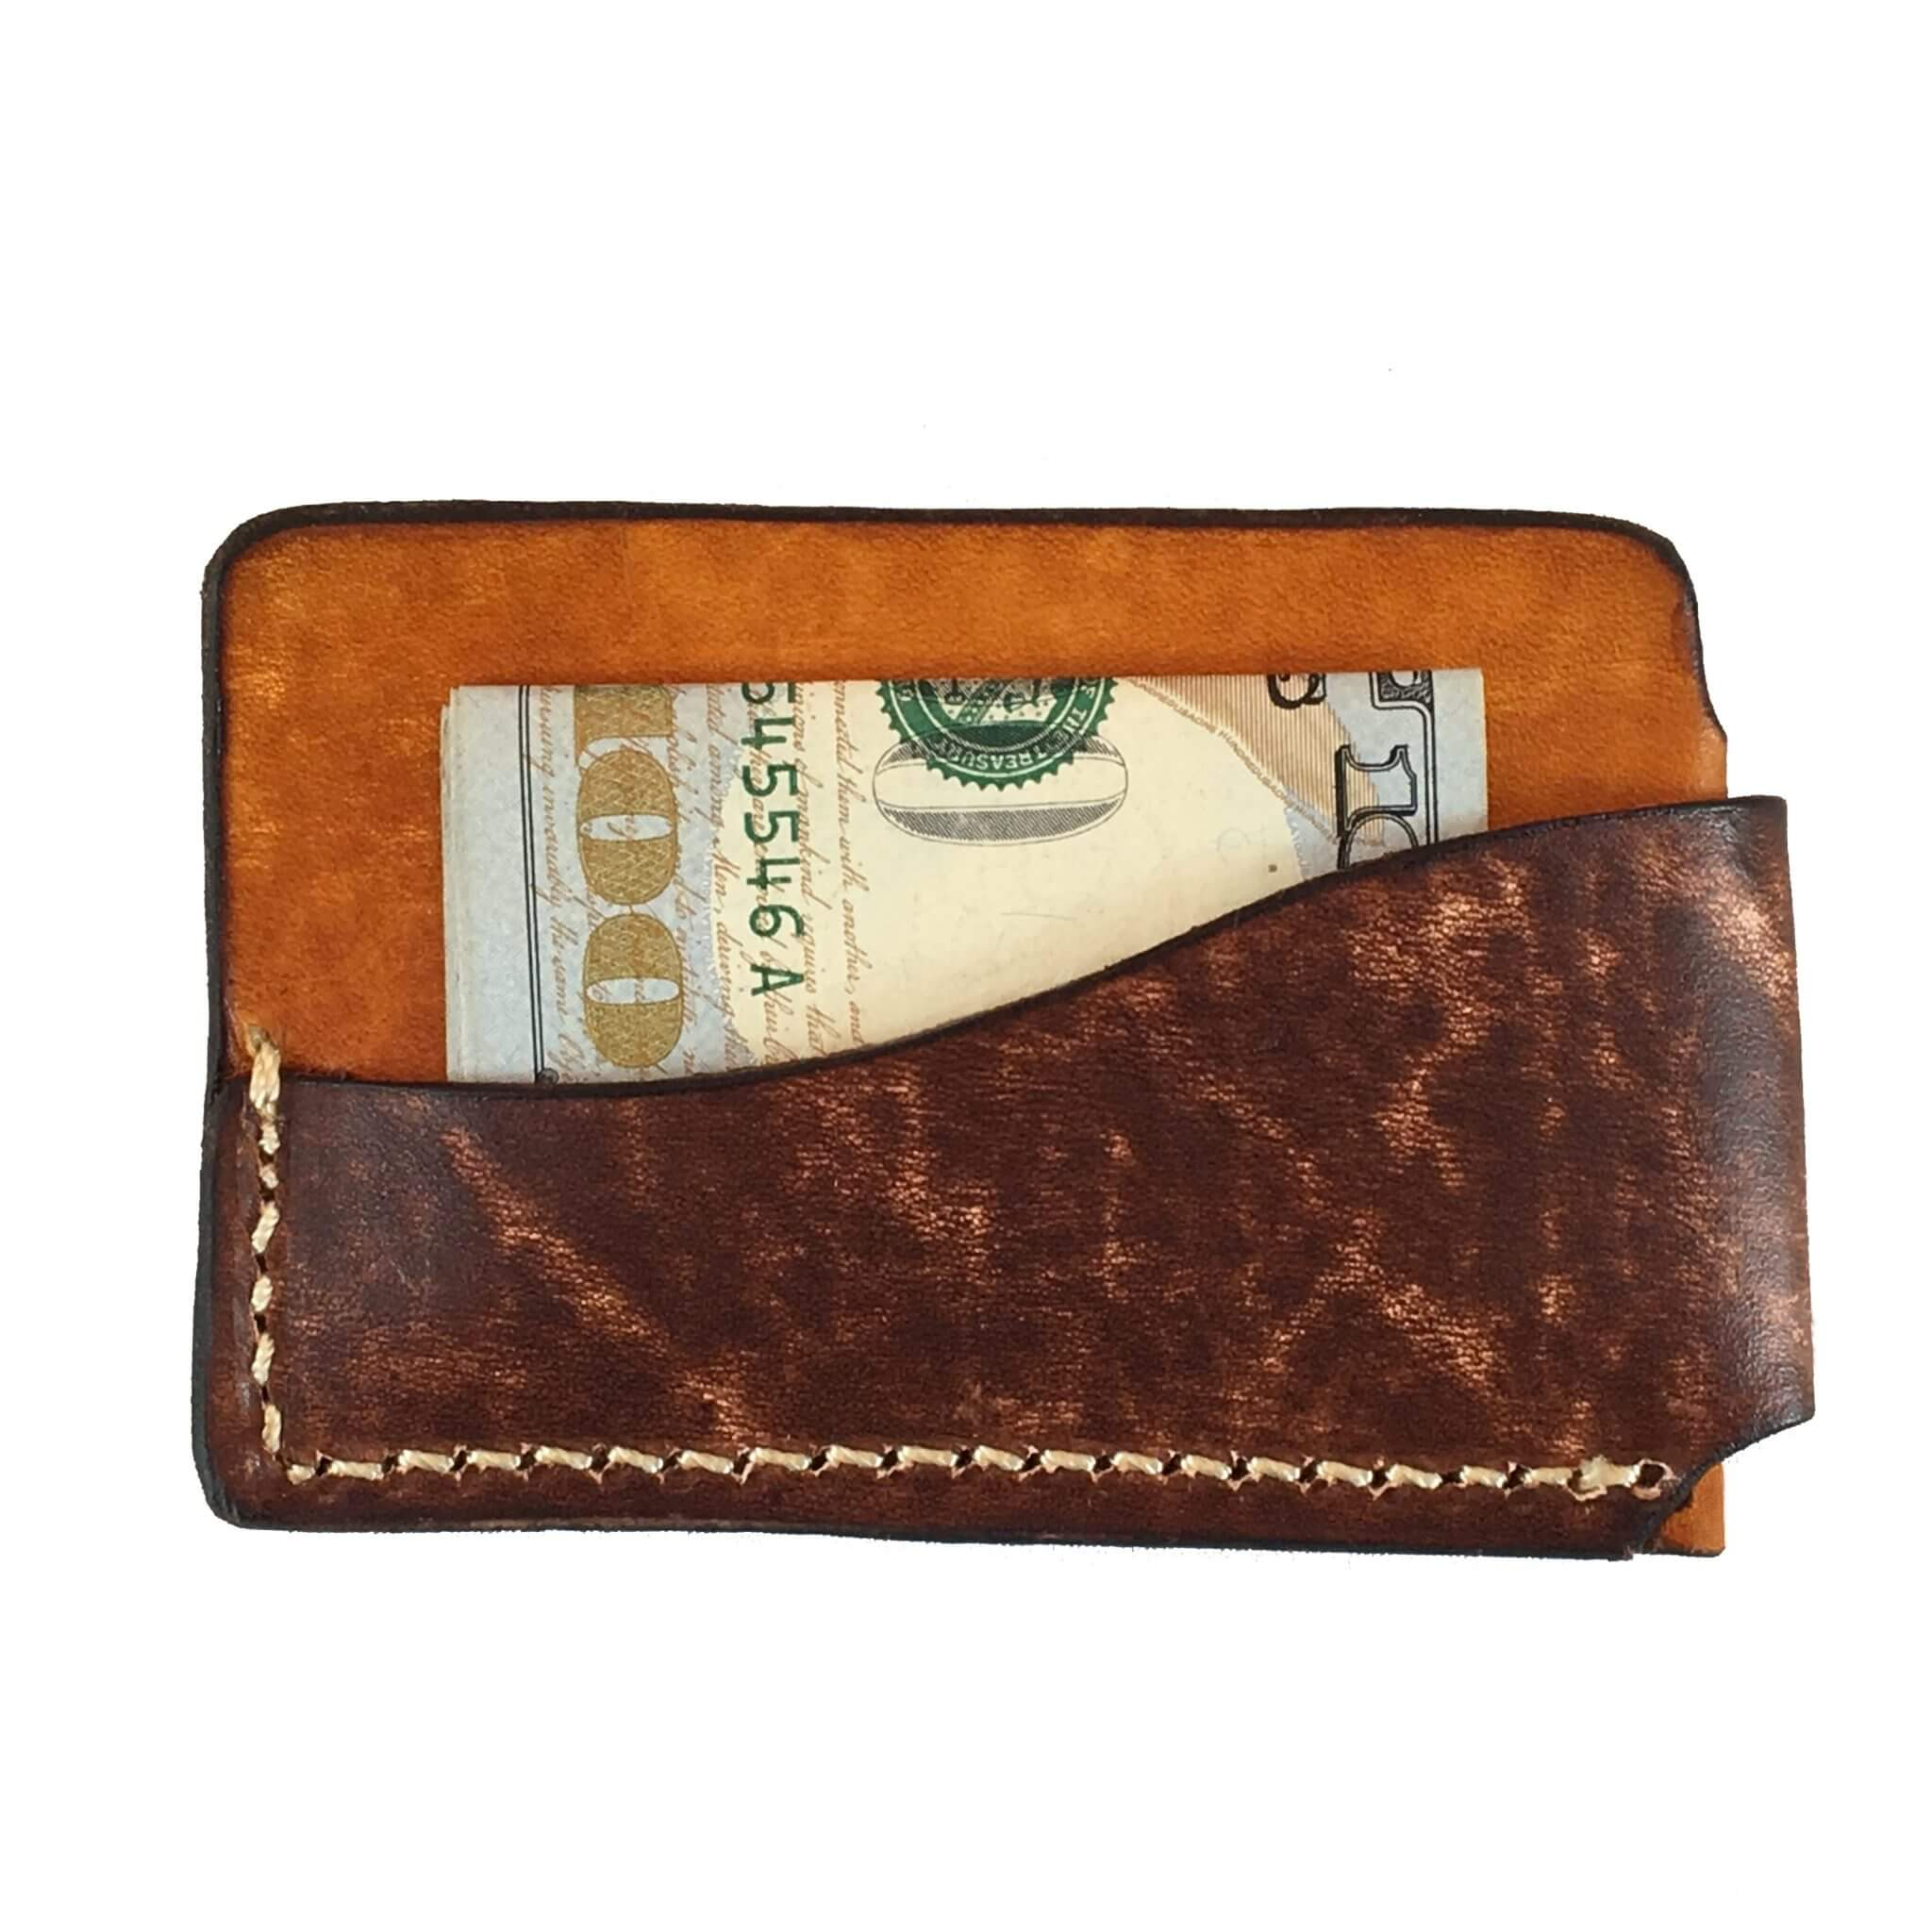 2-Tone Horizontal Front Pocket Wallet with Cash